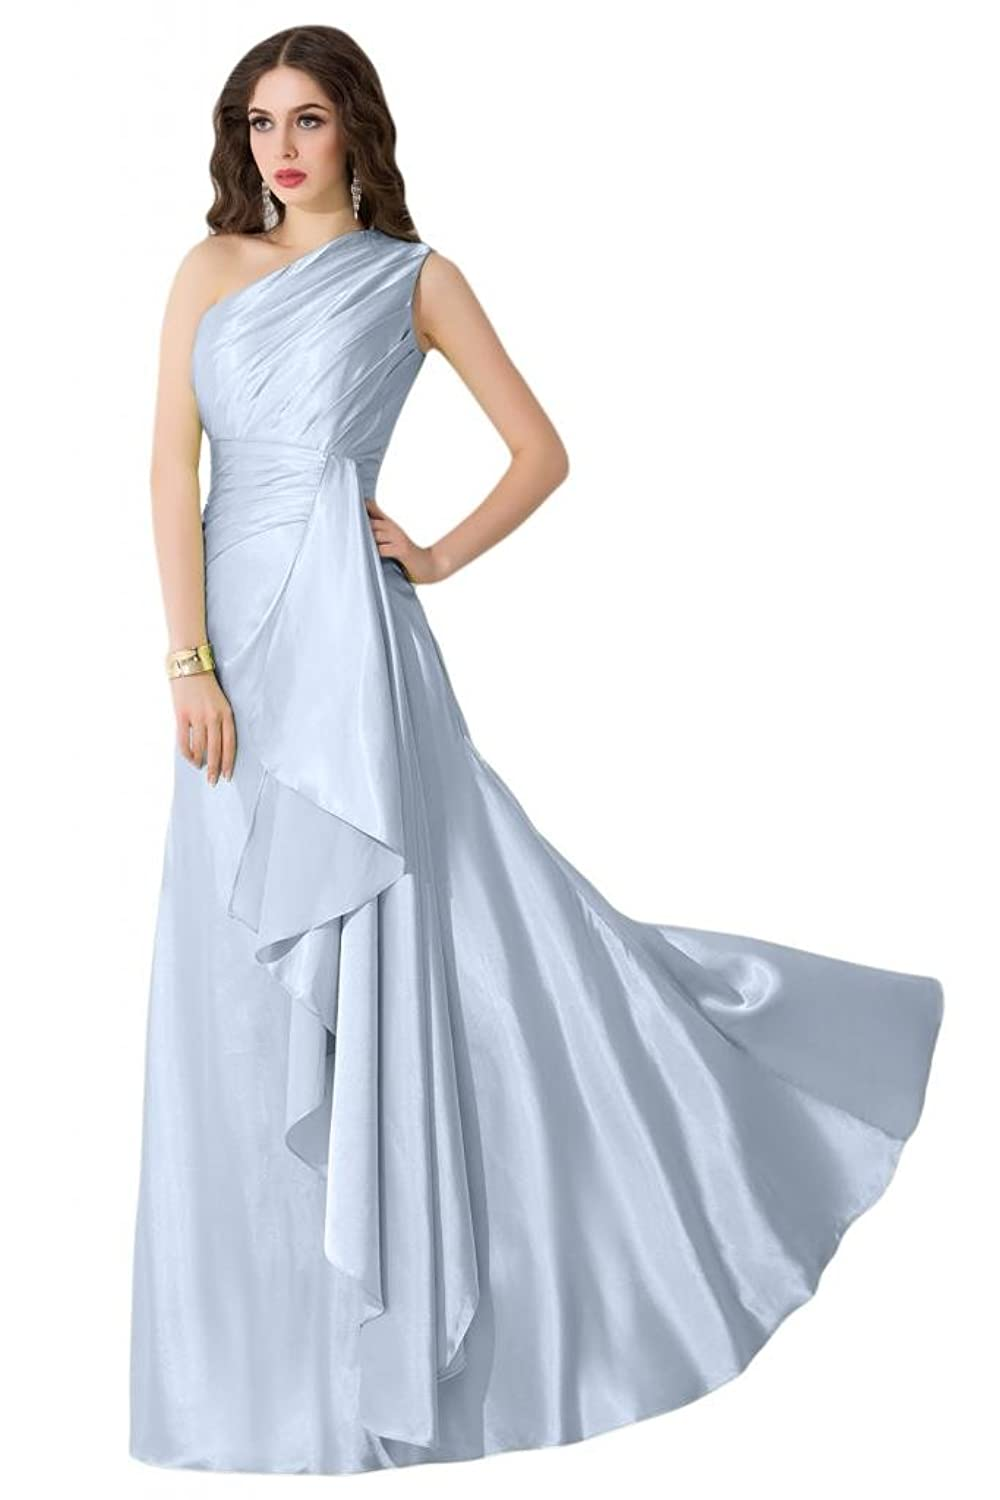 Sunvary Stylish One Shoulder A Line Bridesmaid Wedding Guest Dresses Prom Gowns